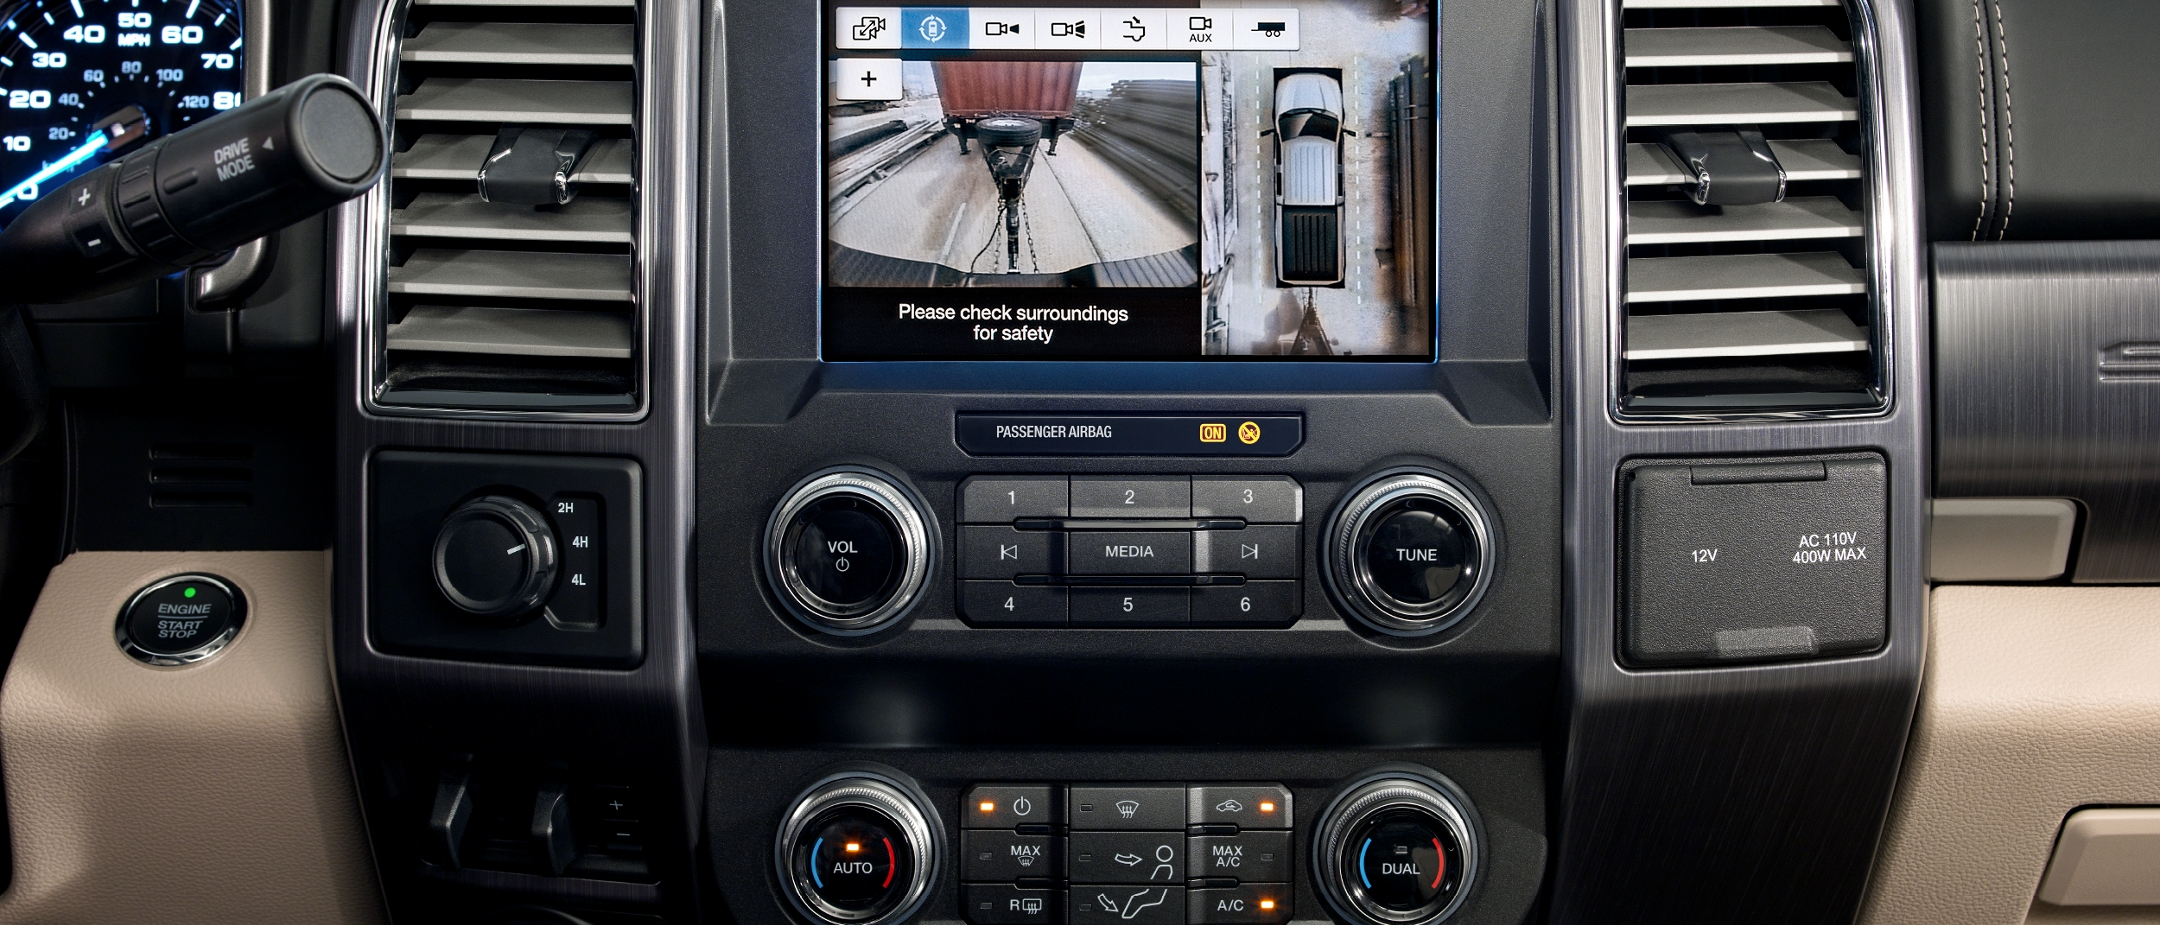 360 Degree Camera on the 2020 Super Duty